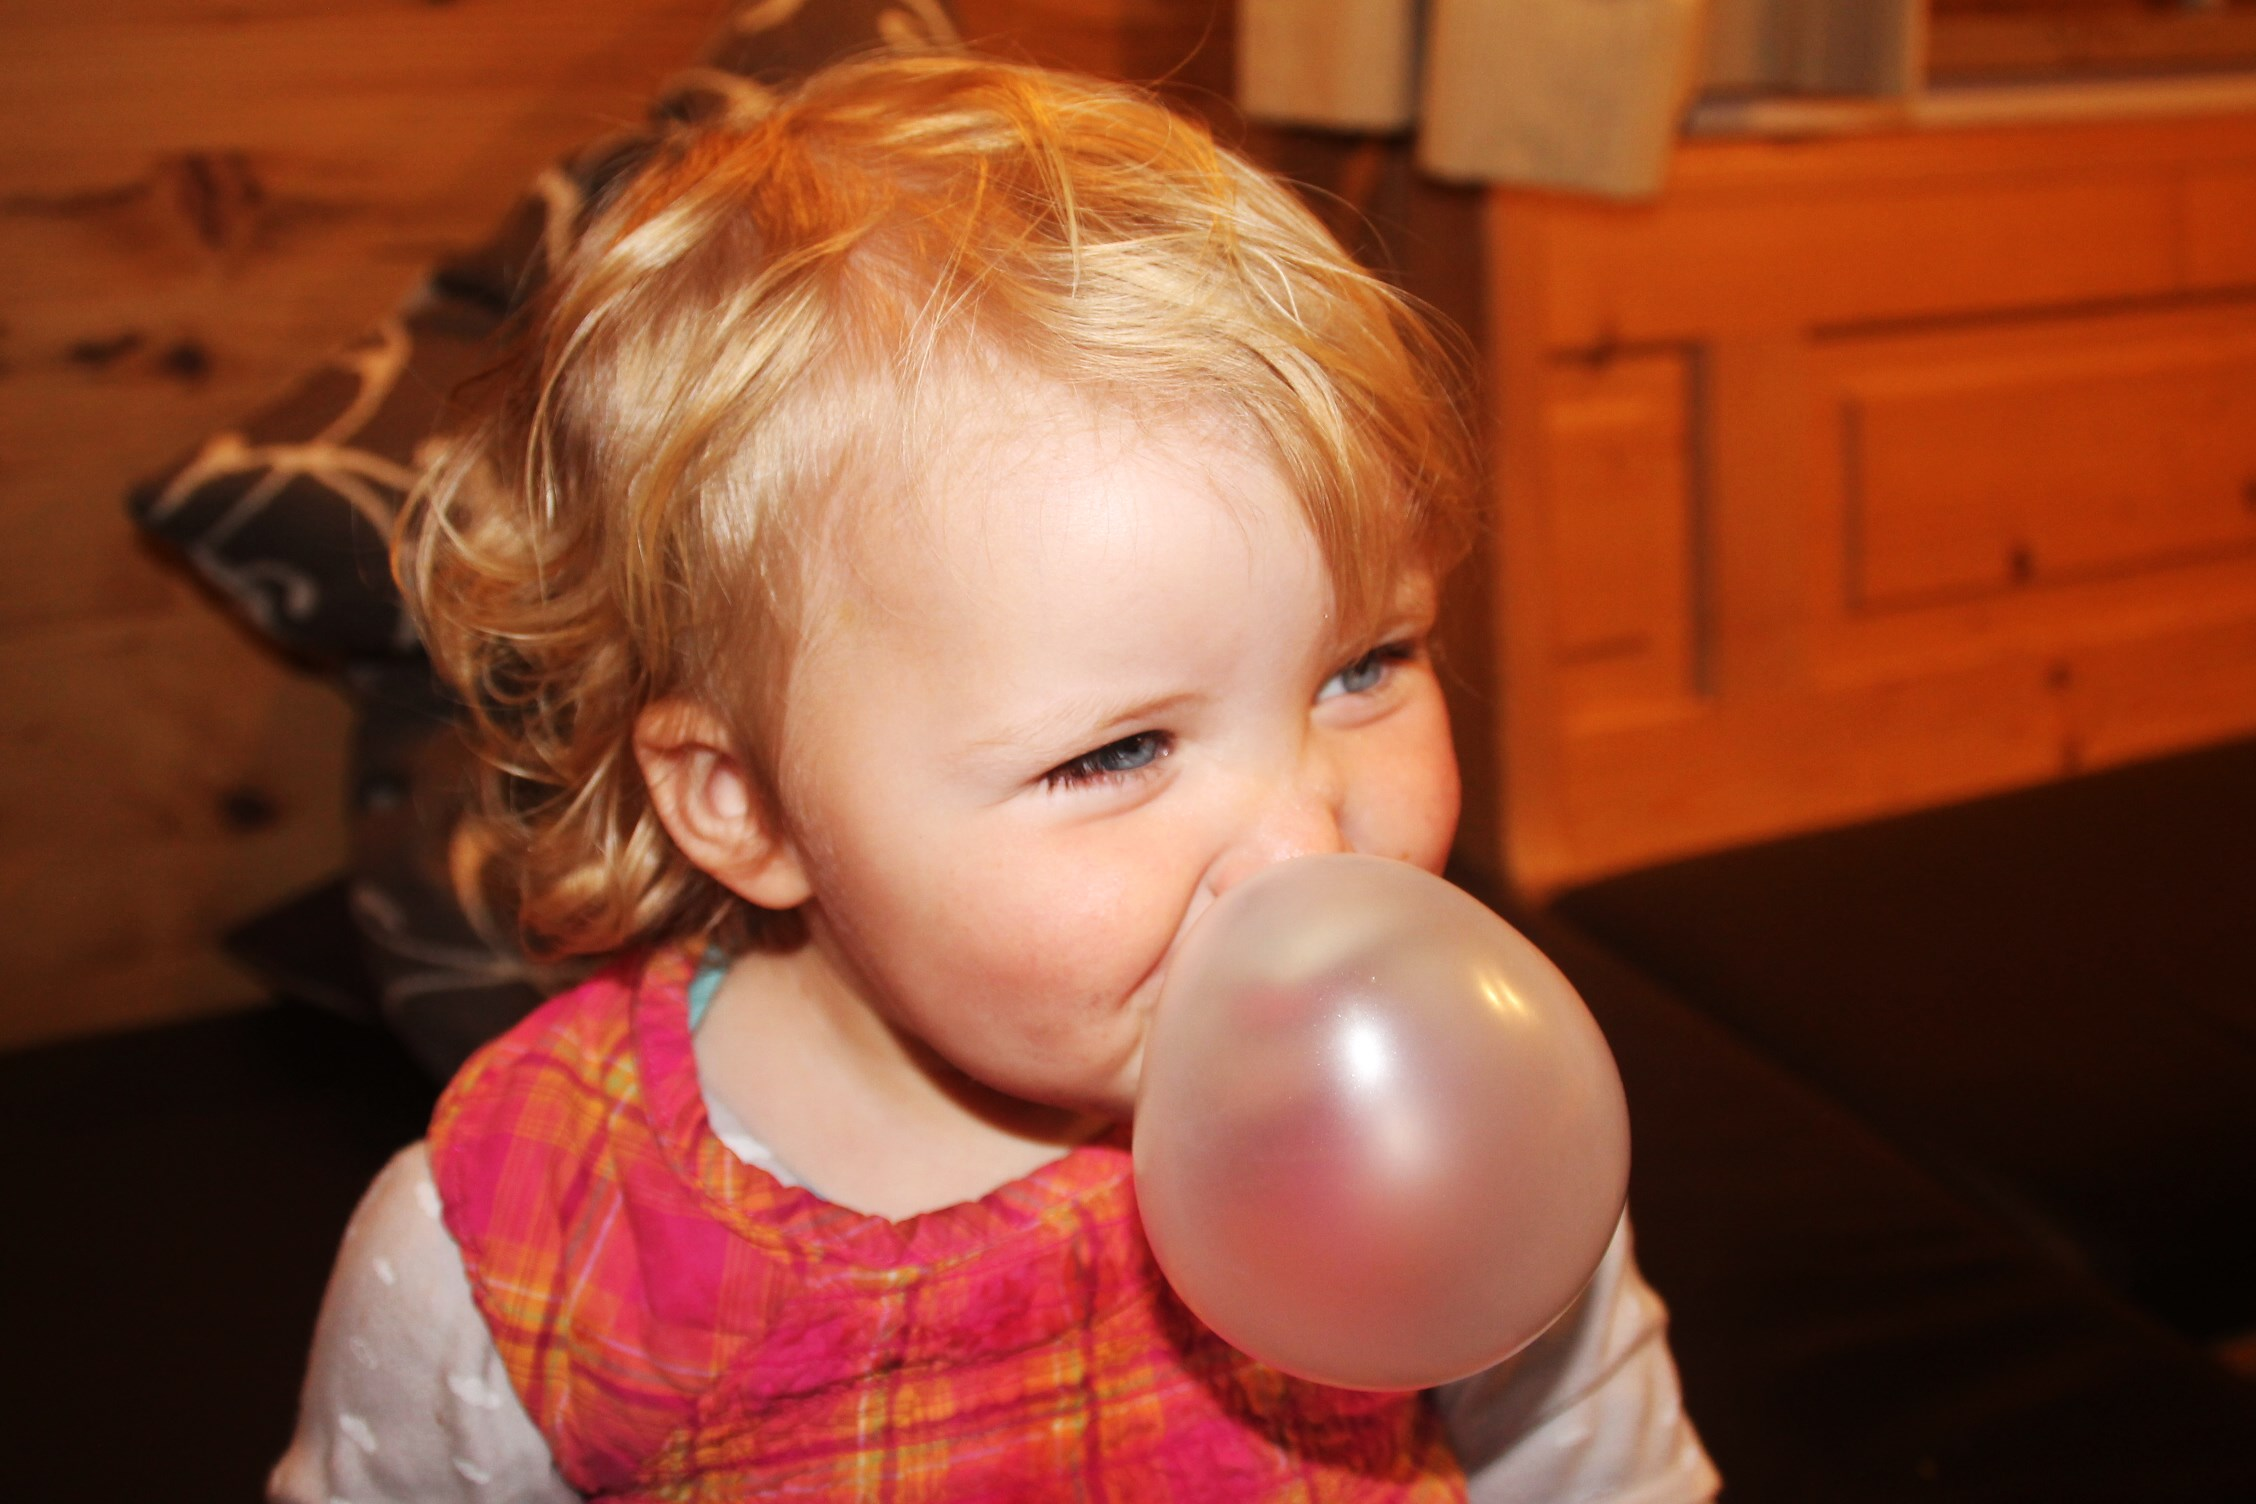 Remember life is all about being happy and creating big pink bubble gum bubbles!